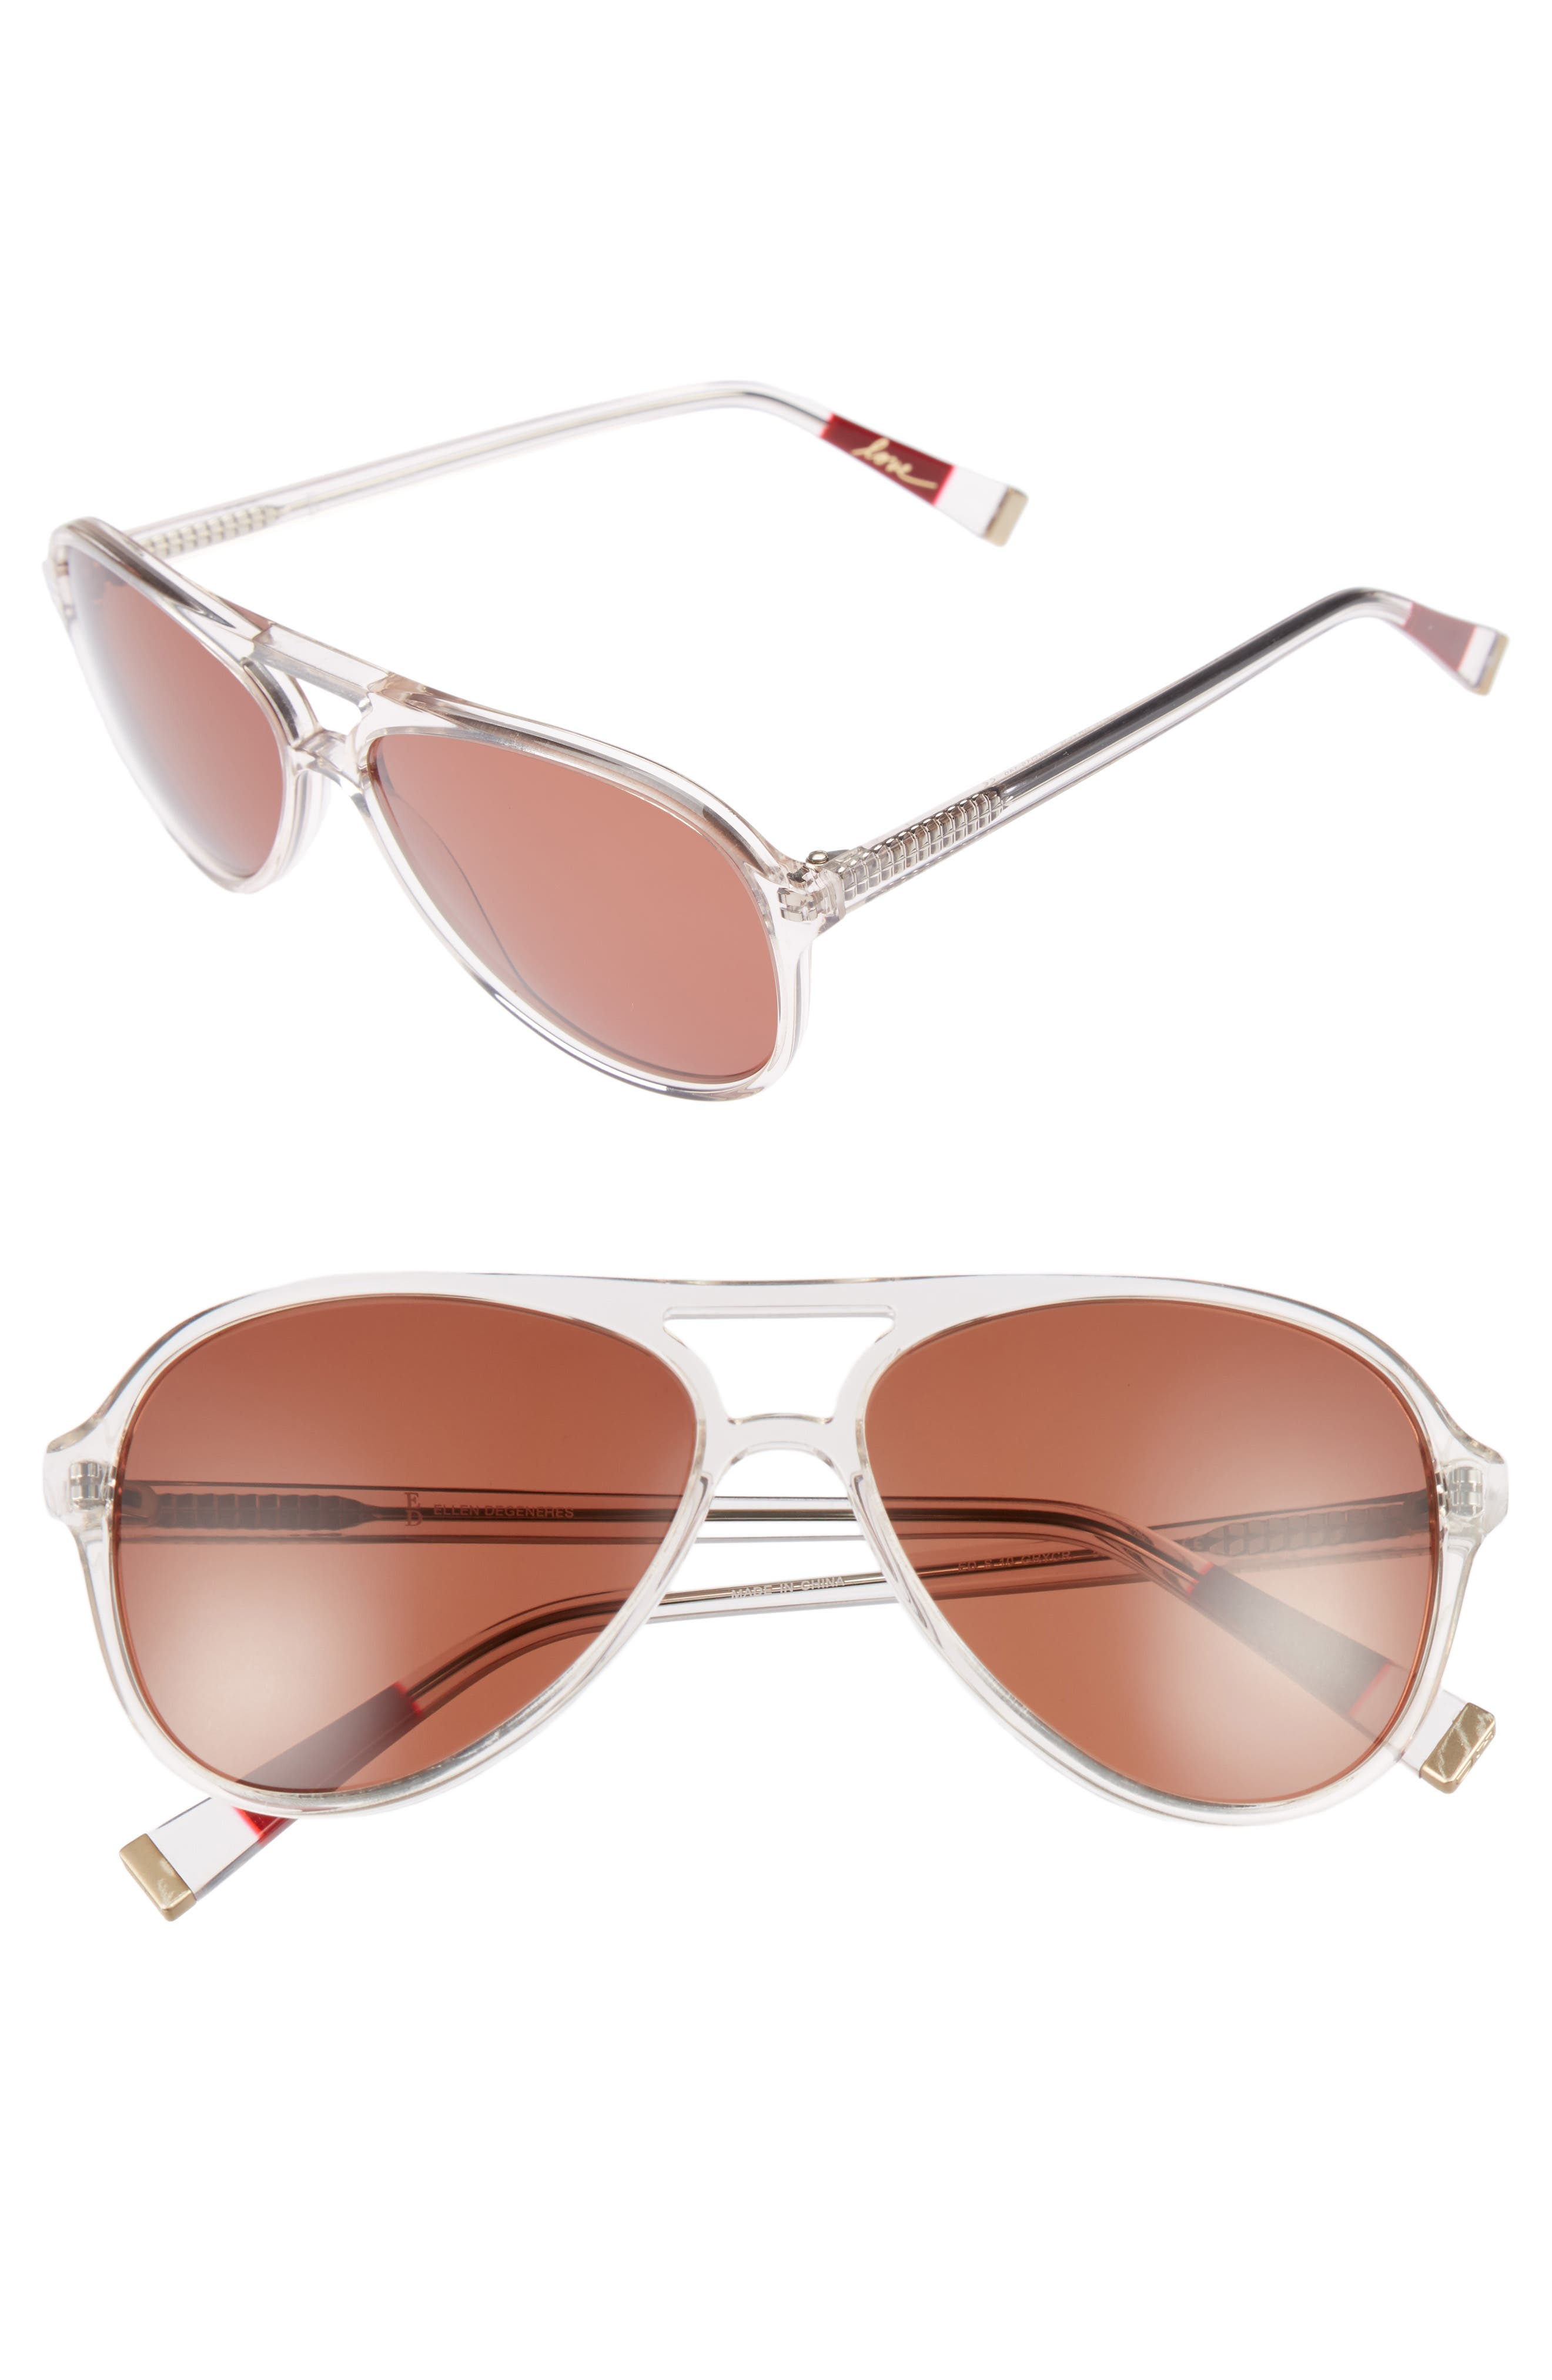 58mm Gradient Aviator Sunglasses,                         Main,                         color, Grey Crystal